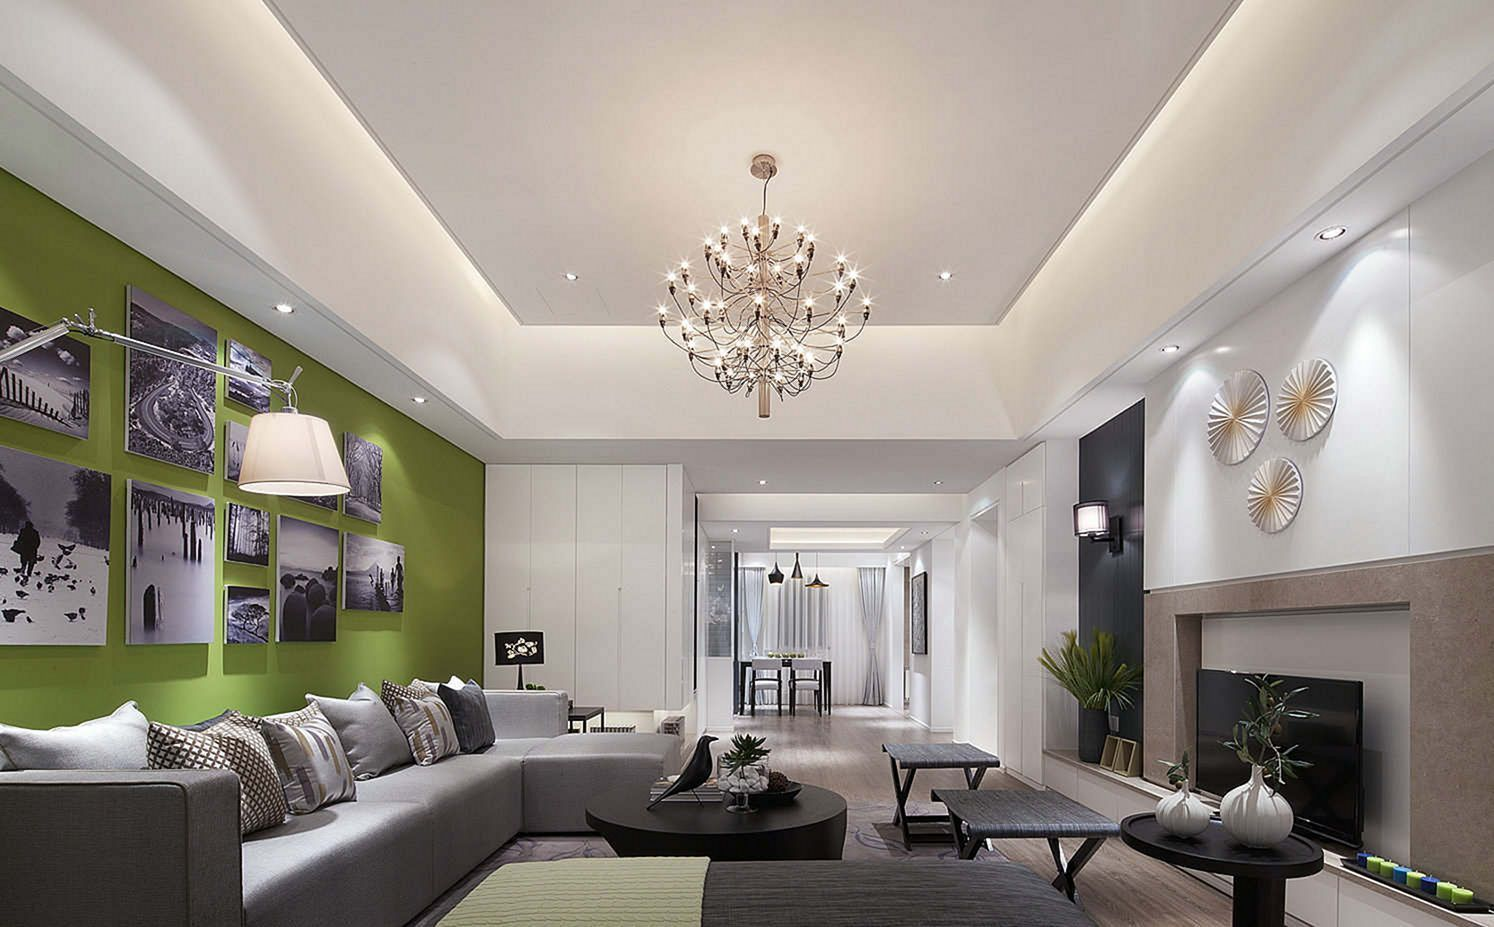 Pin By Home Apartment On Living Room Decorations Rectangular Living Rooms Simple Ceiling Design Ceiling Design Living Room